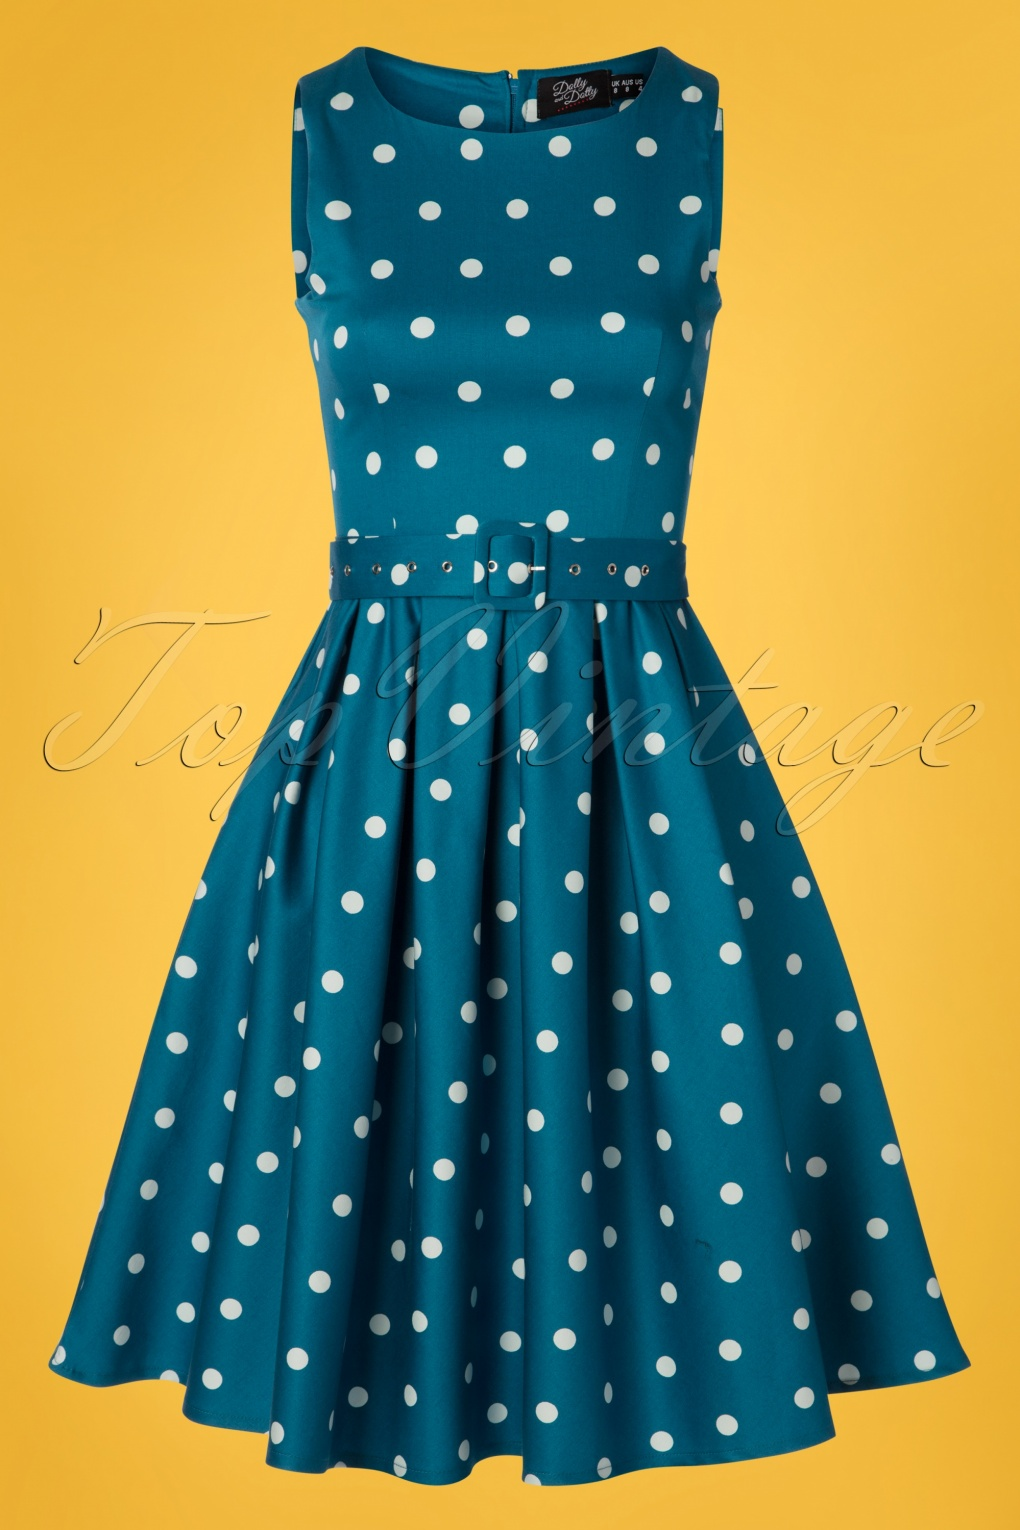 500 Vintage Style Dresses for Sale 50s Annie Polkadot Swing Dress in Peacock Blue �41.46 AT vintagedancer.com